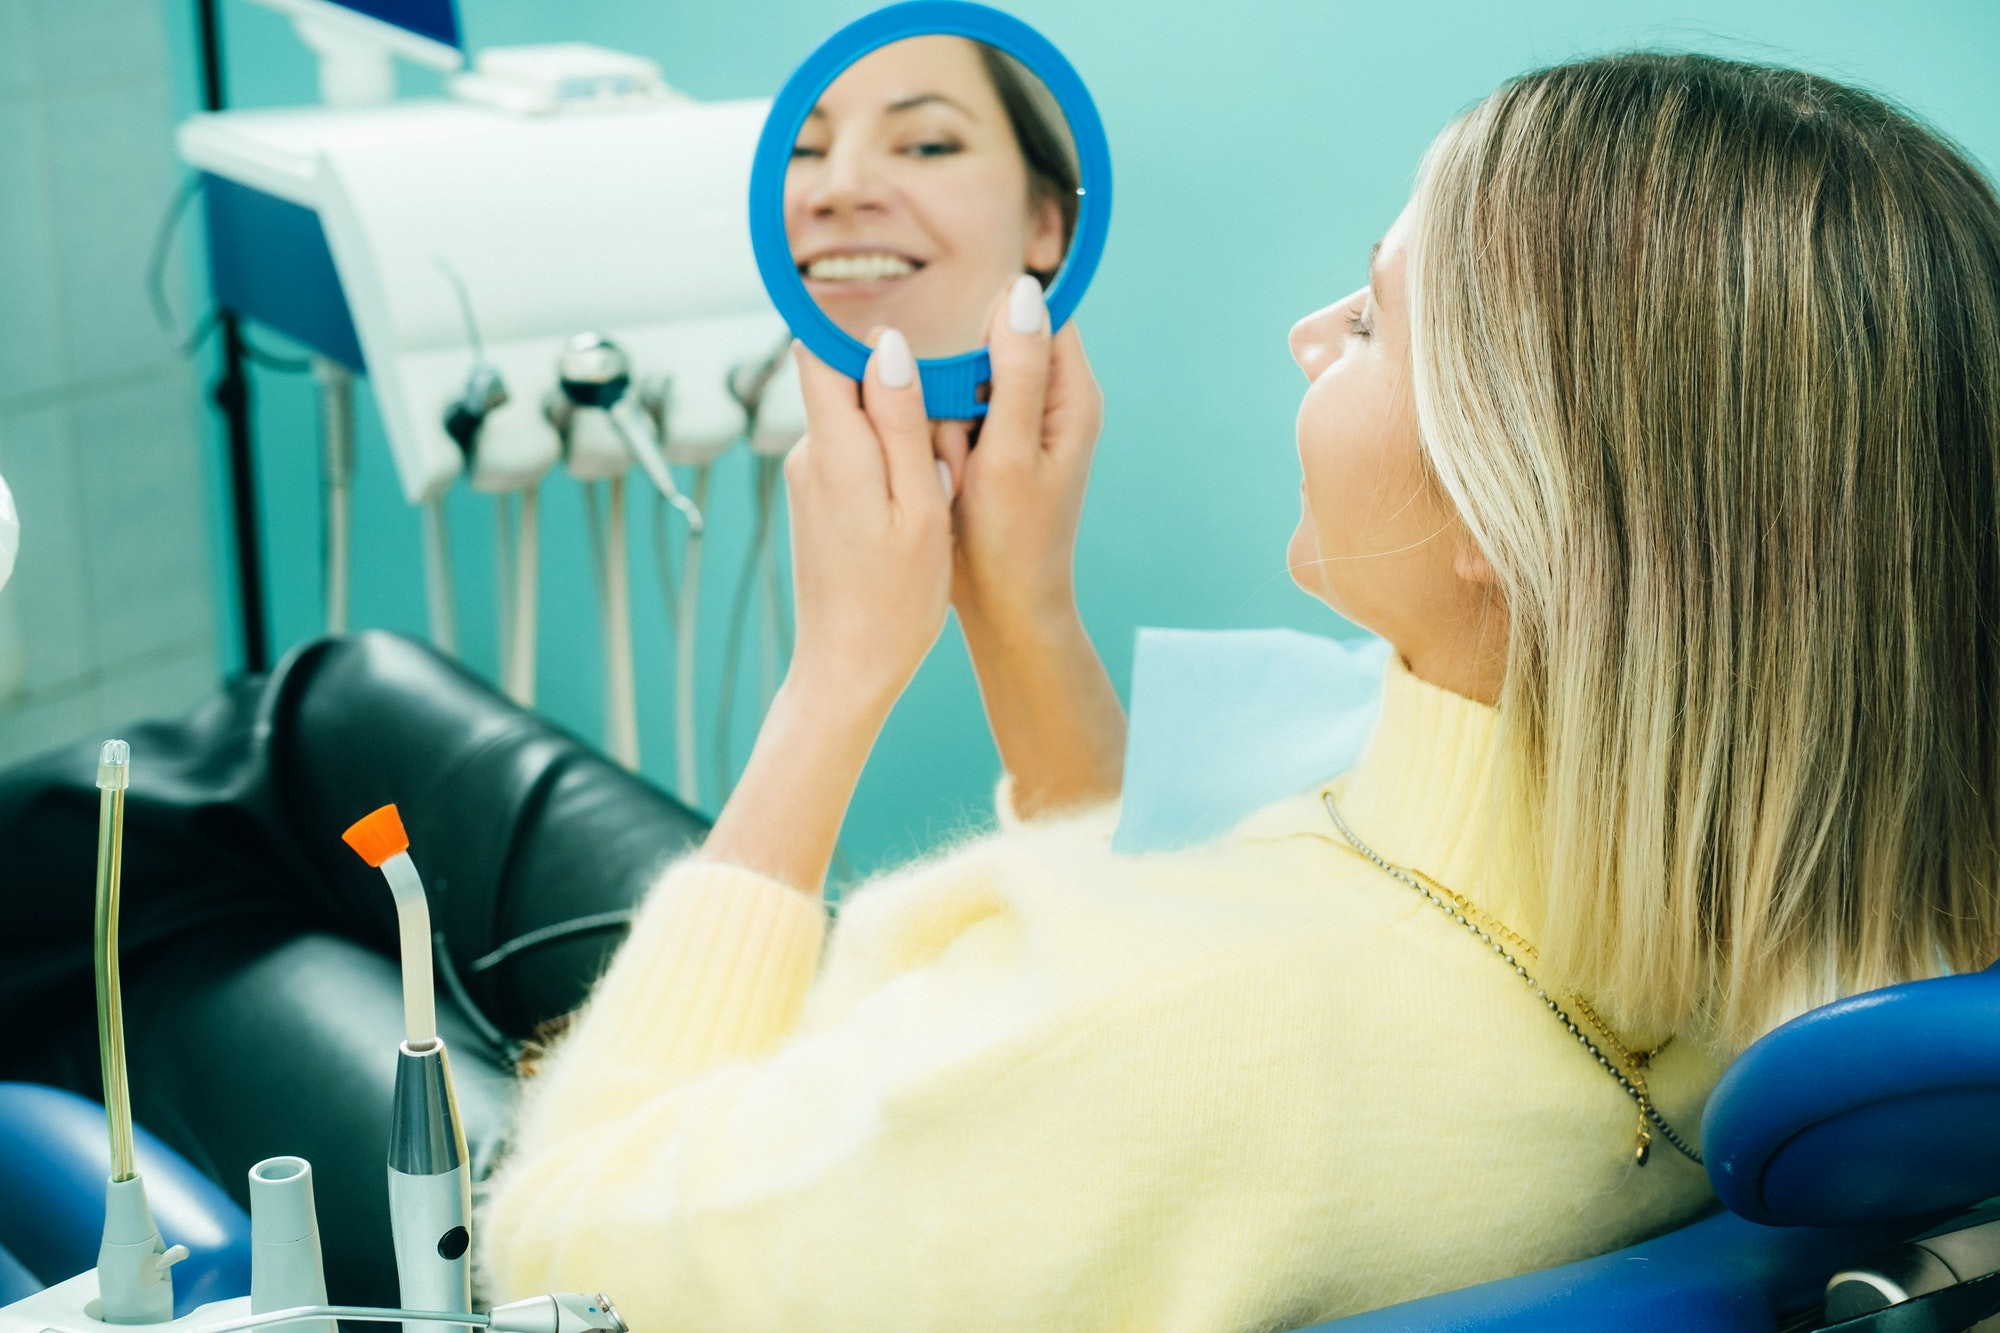 The girl smiles and looks in the mirror in dentistry